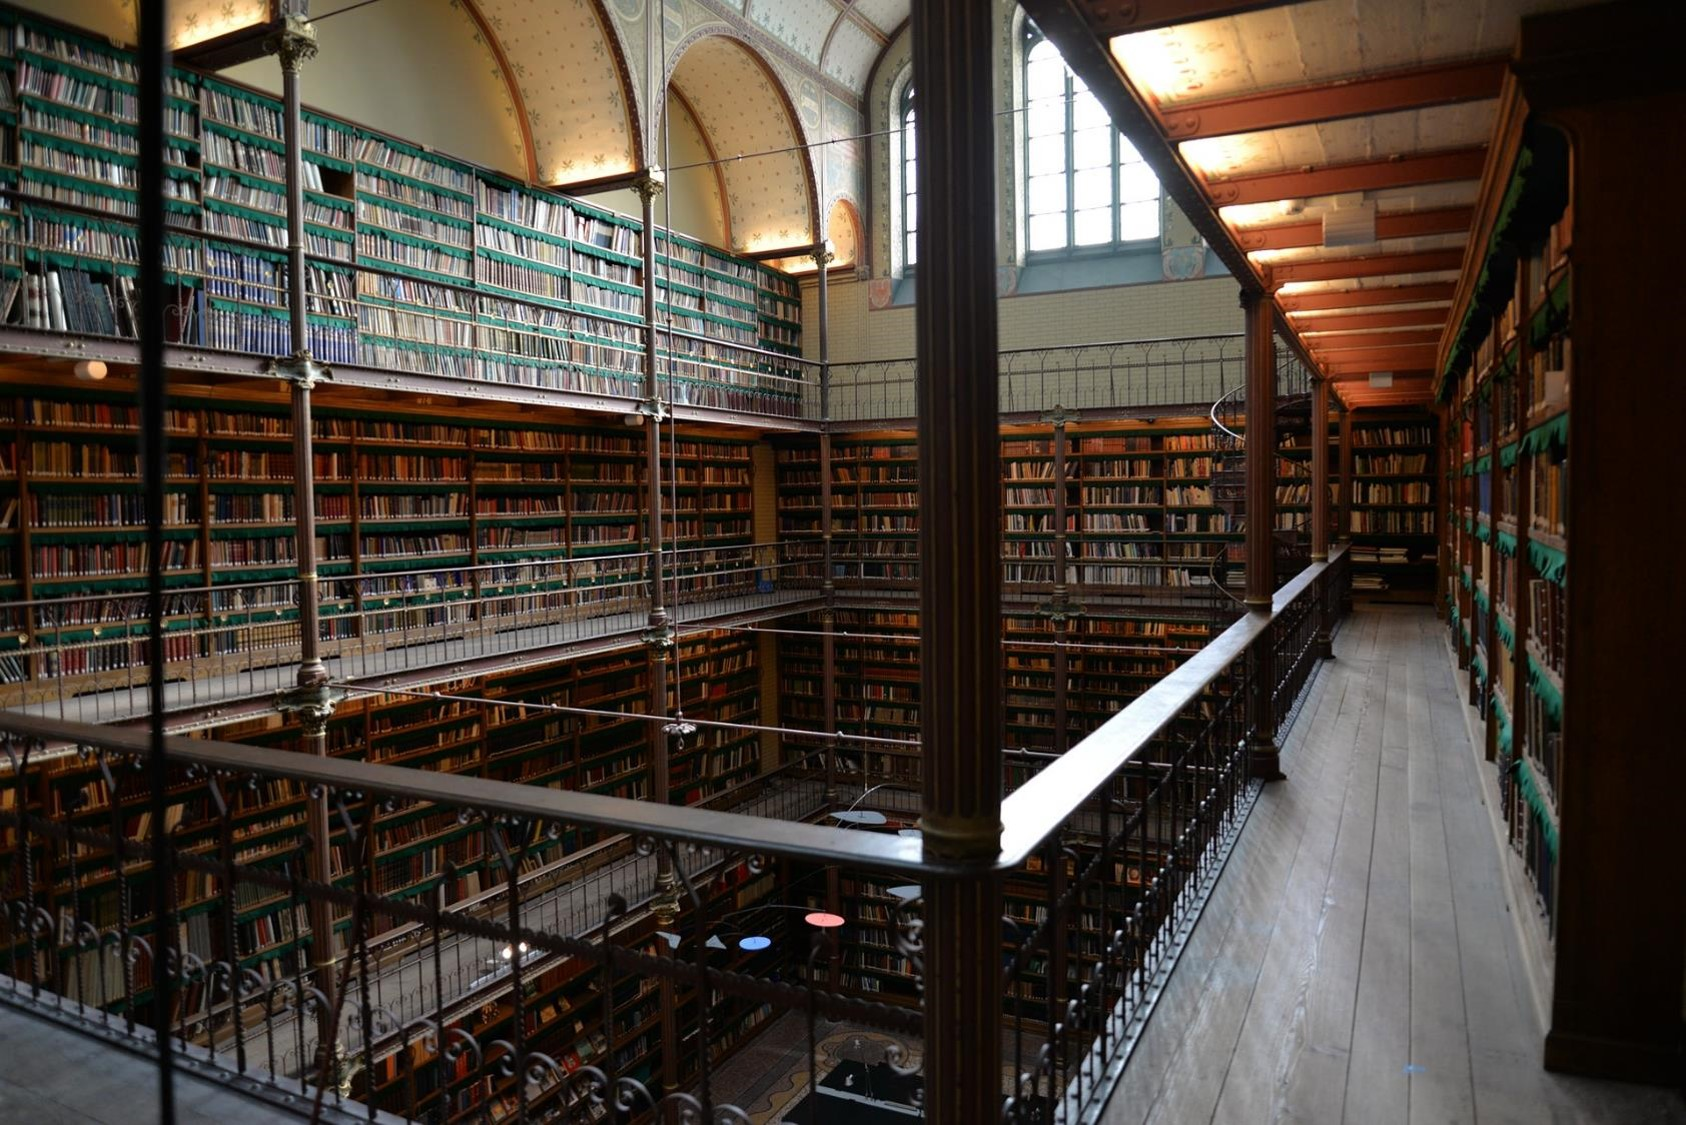 library-705464_1920_web